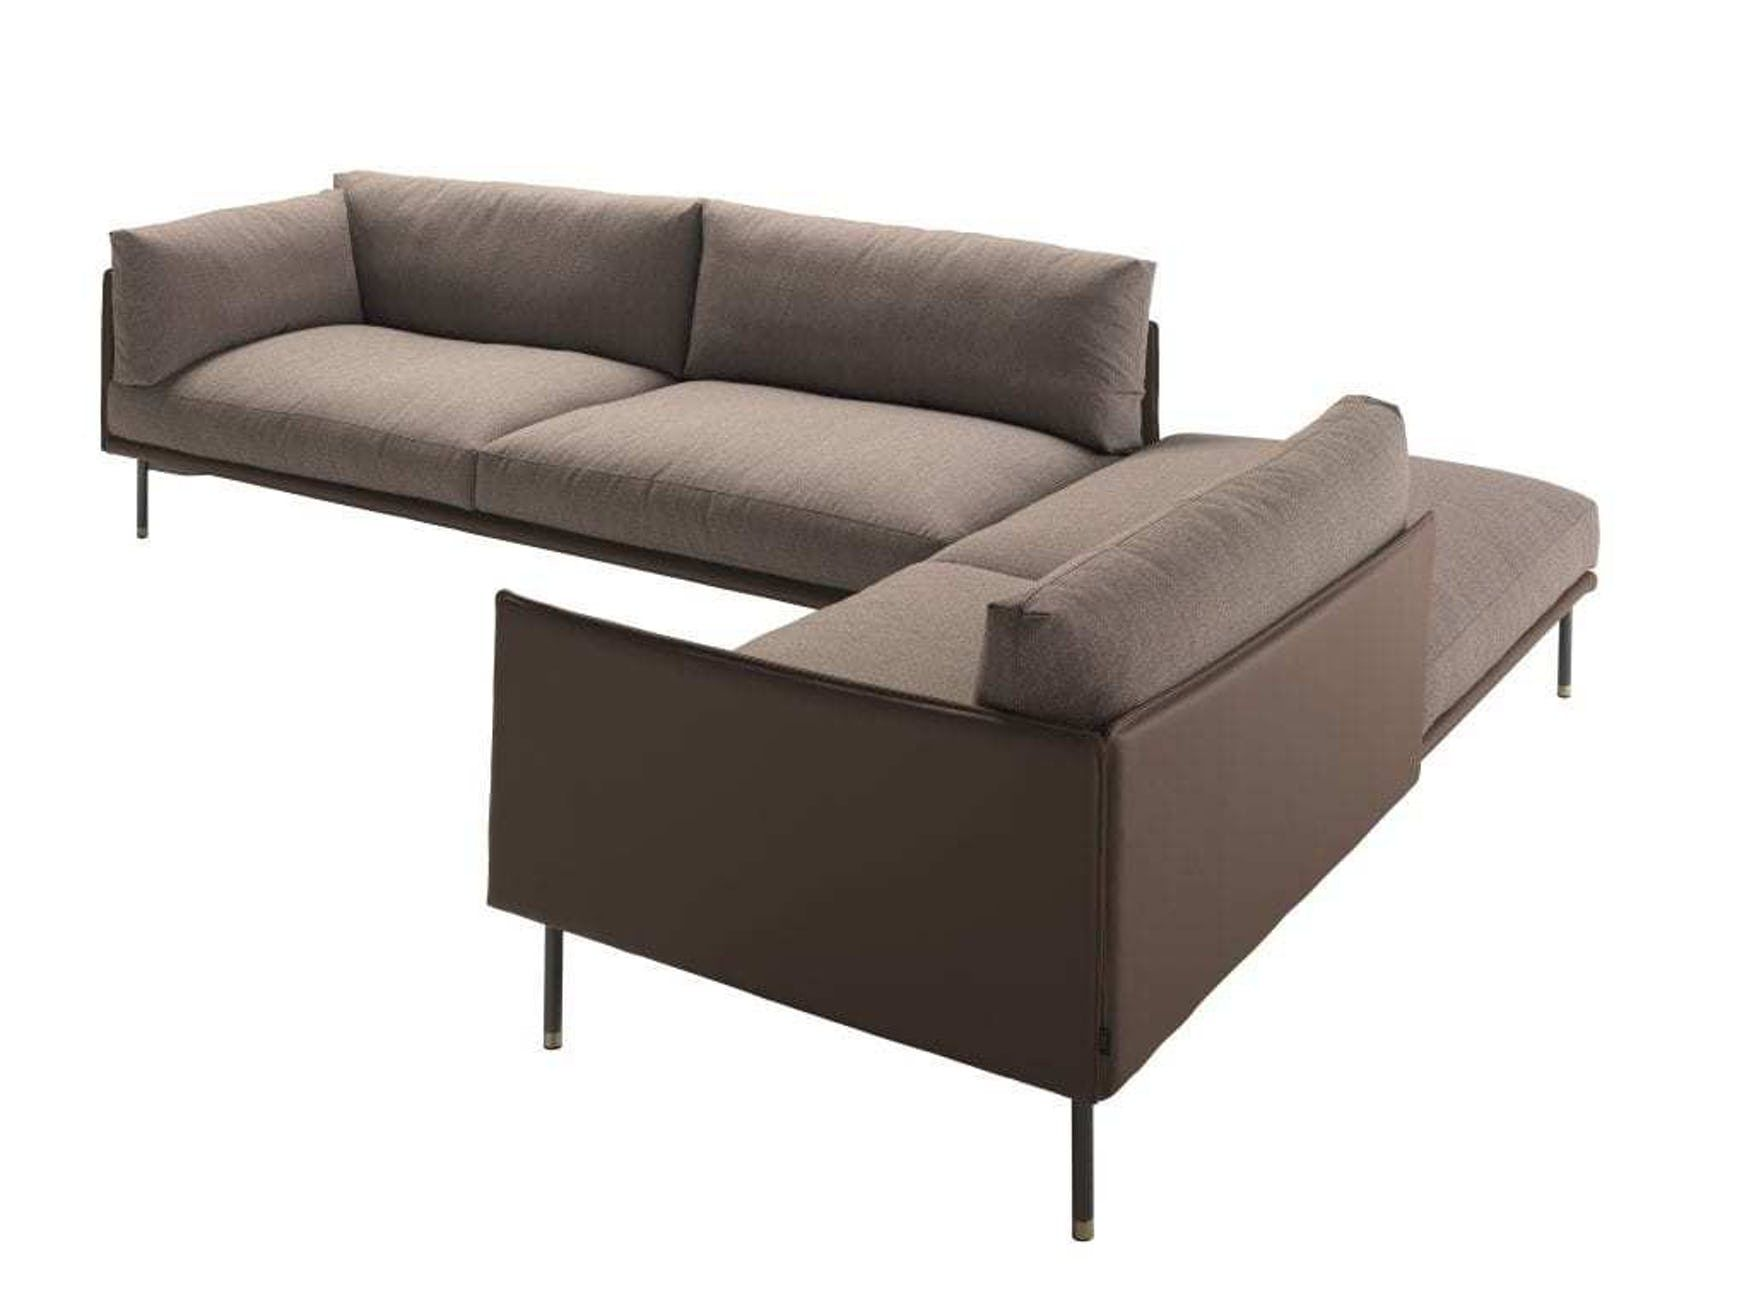 Wilton Sofa By Frag Furniture Now Available At Haute Living